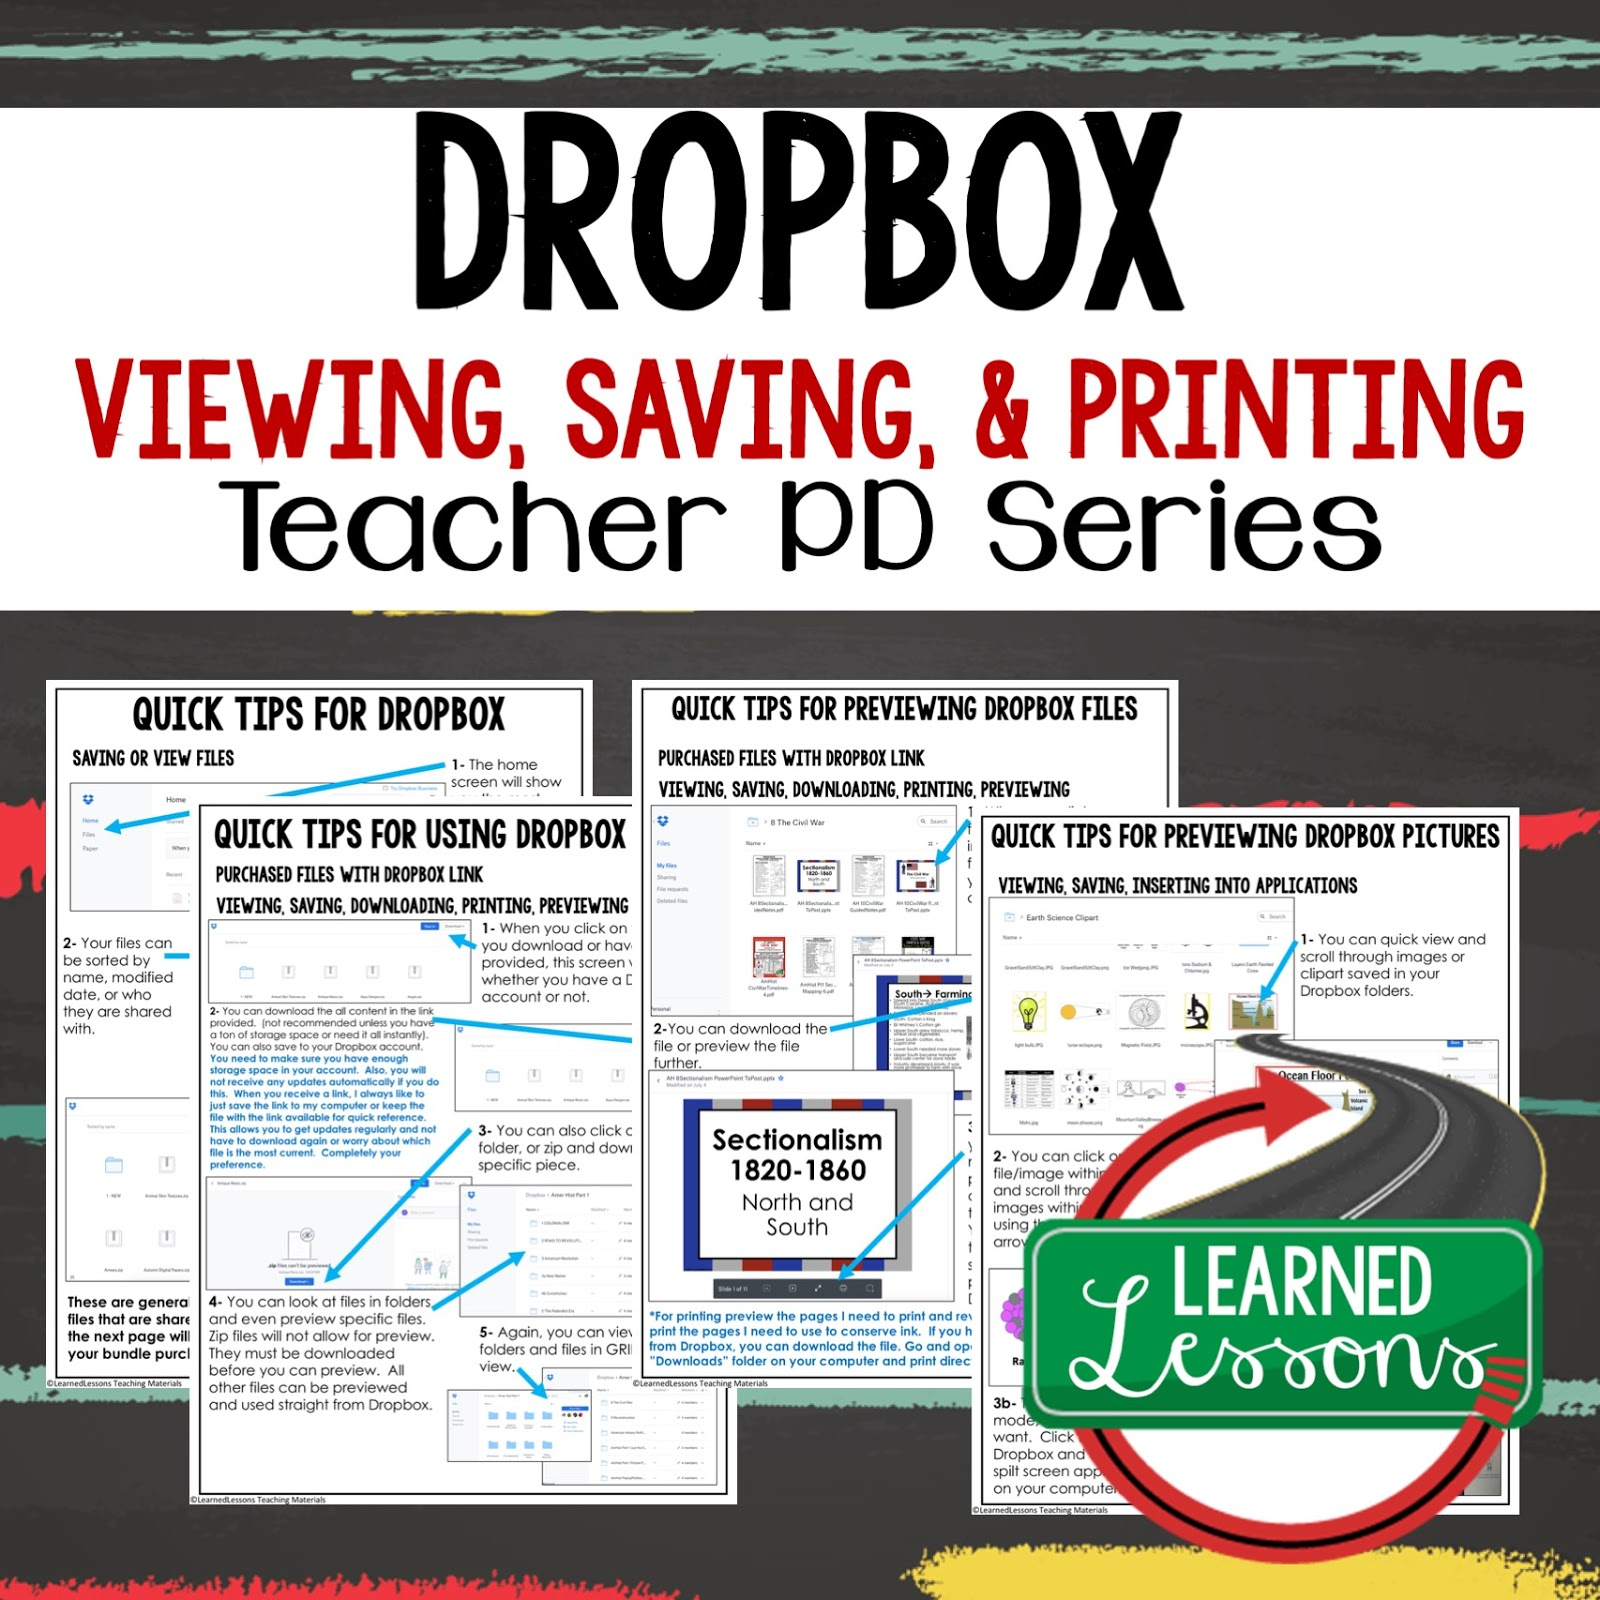 Instructions for using dropbox | windsor forest tr group.